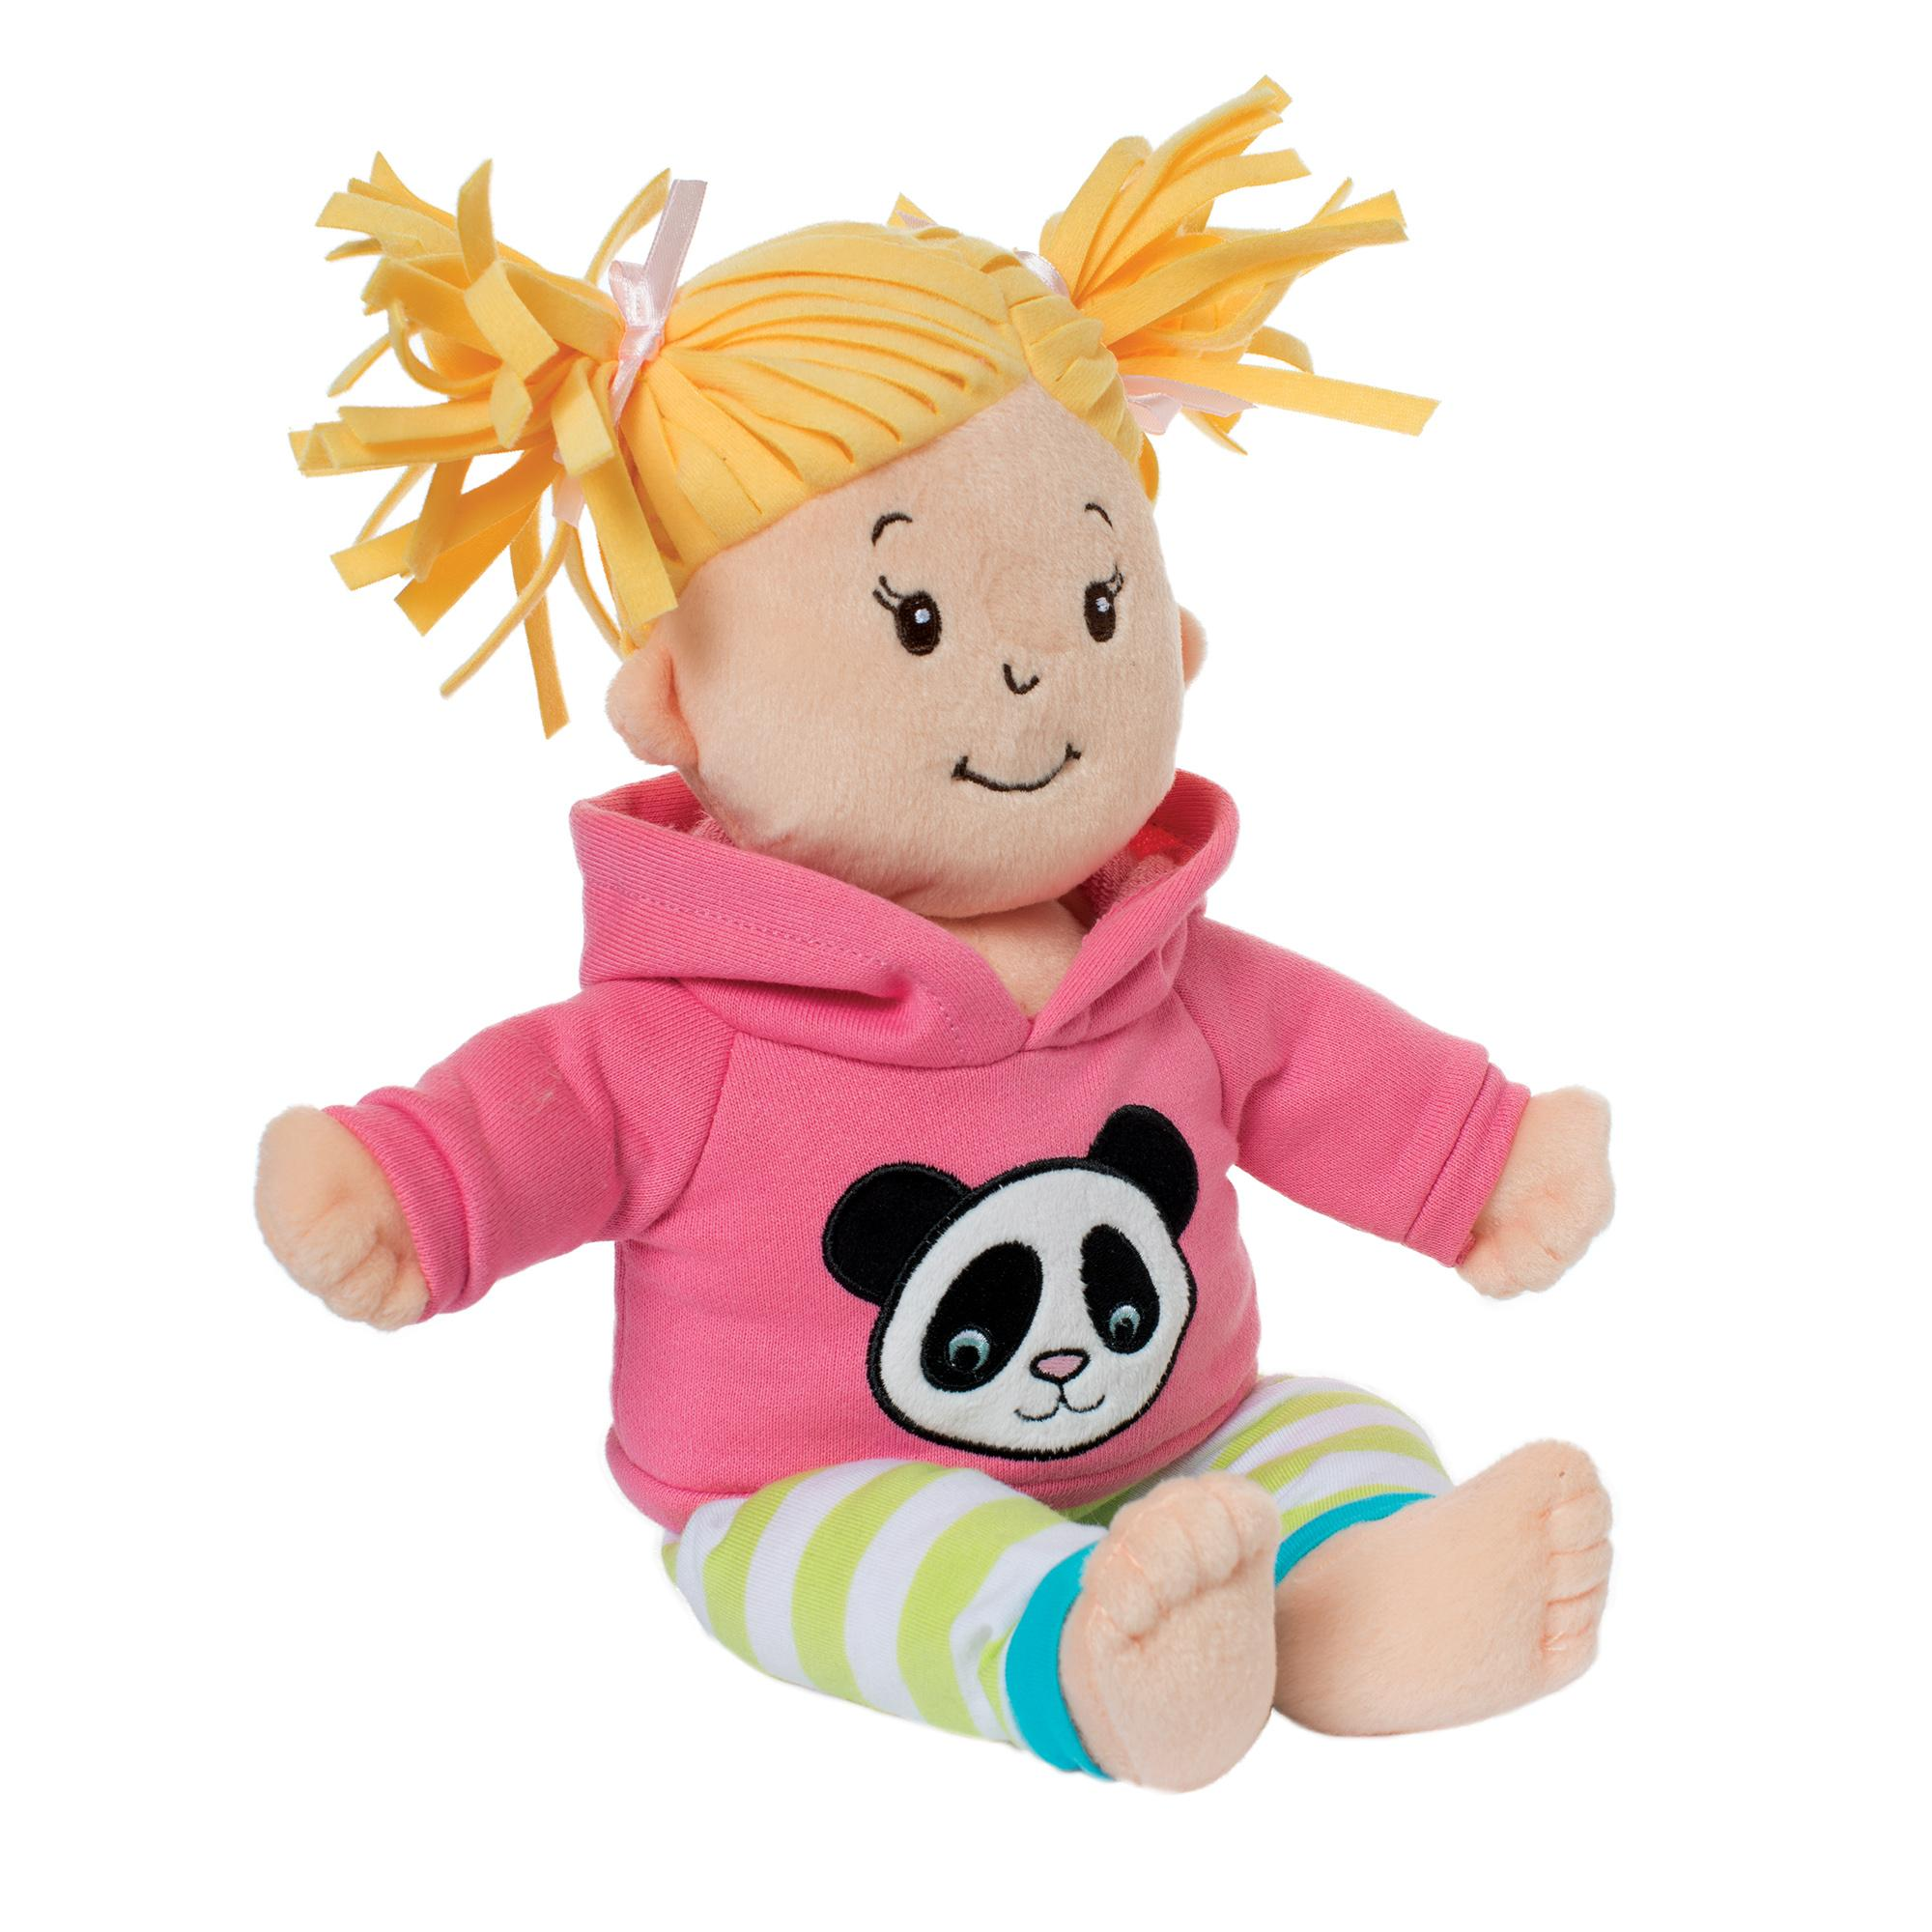 Toys For Girls Age 15 : Amazon manhattan toy baby stella chillin doll